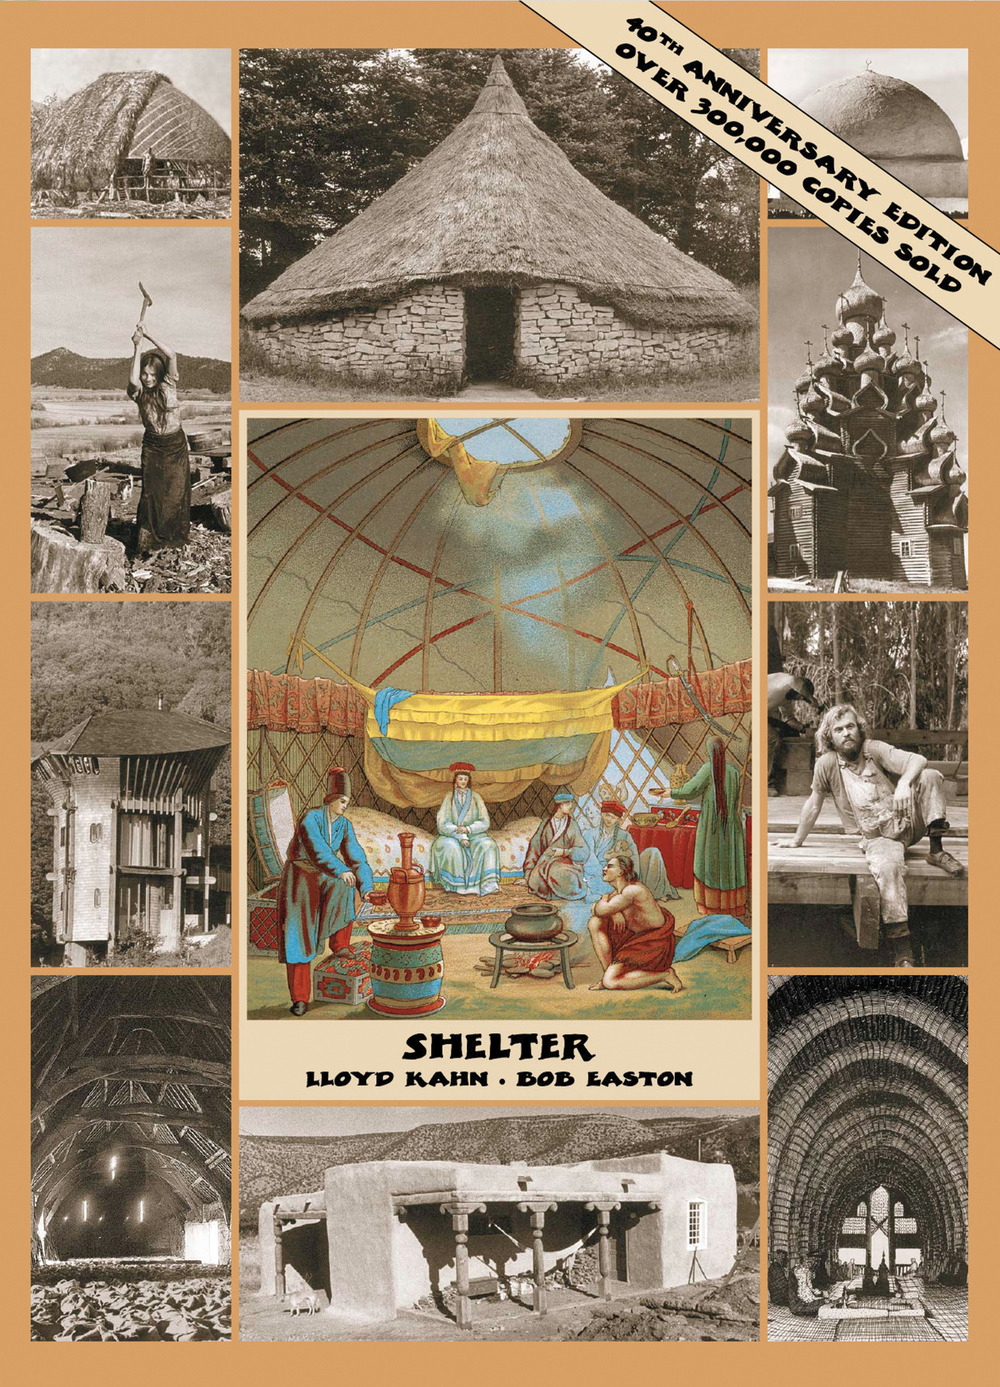 Our classic namesake book from 1973, with over 1000 photos of amazing handbuilt shelters: huts, tents, domes, yurts, caves, barns, houseboats, treehouses, sheds, and much, very much more.